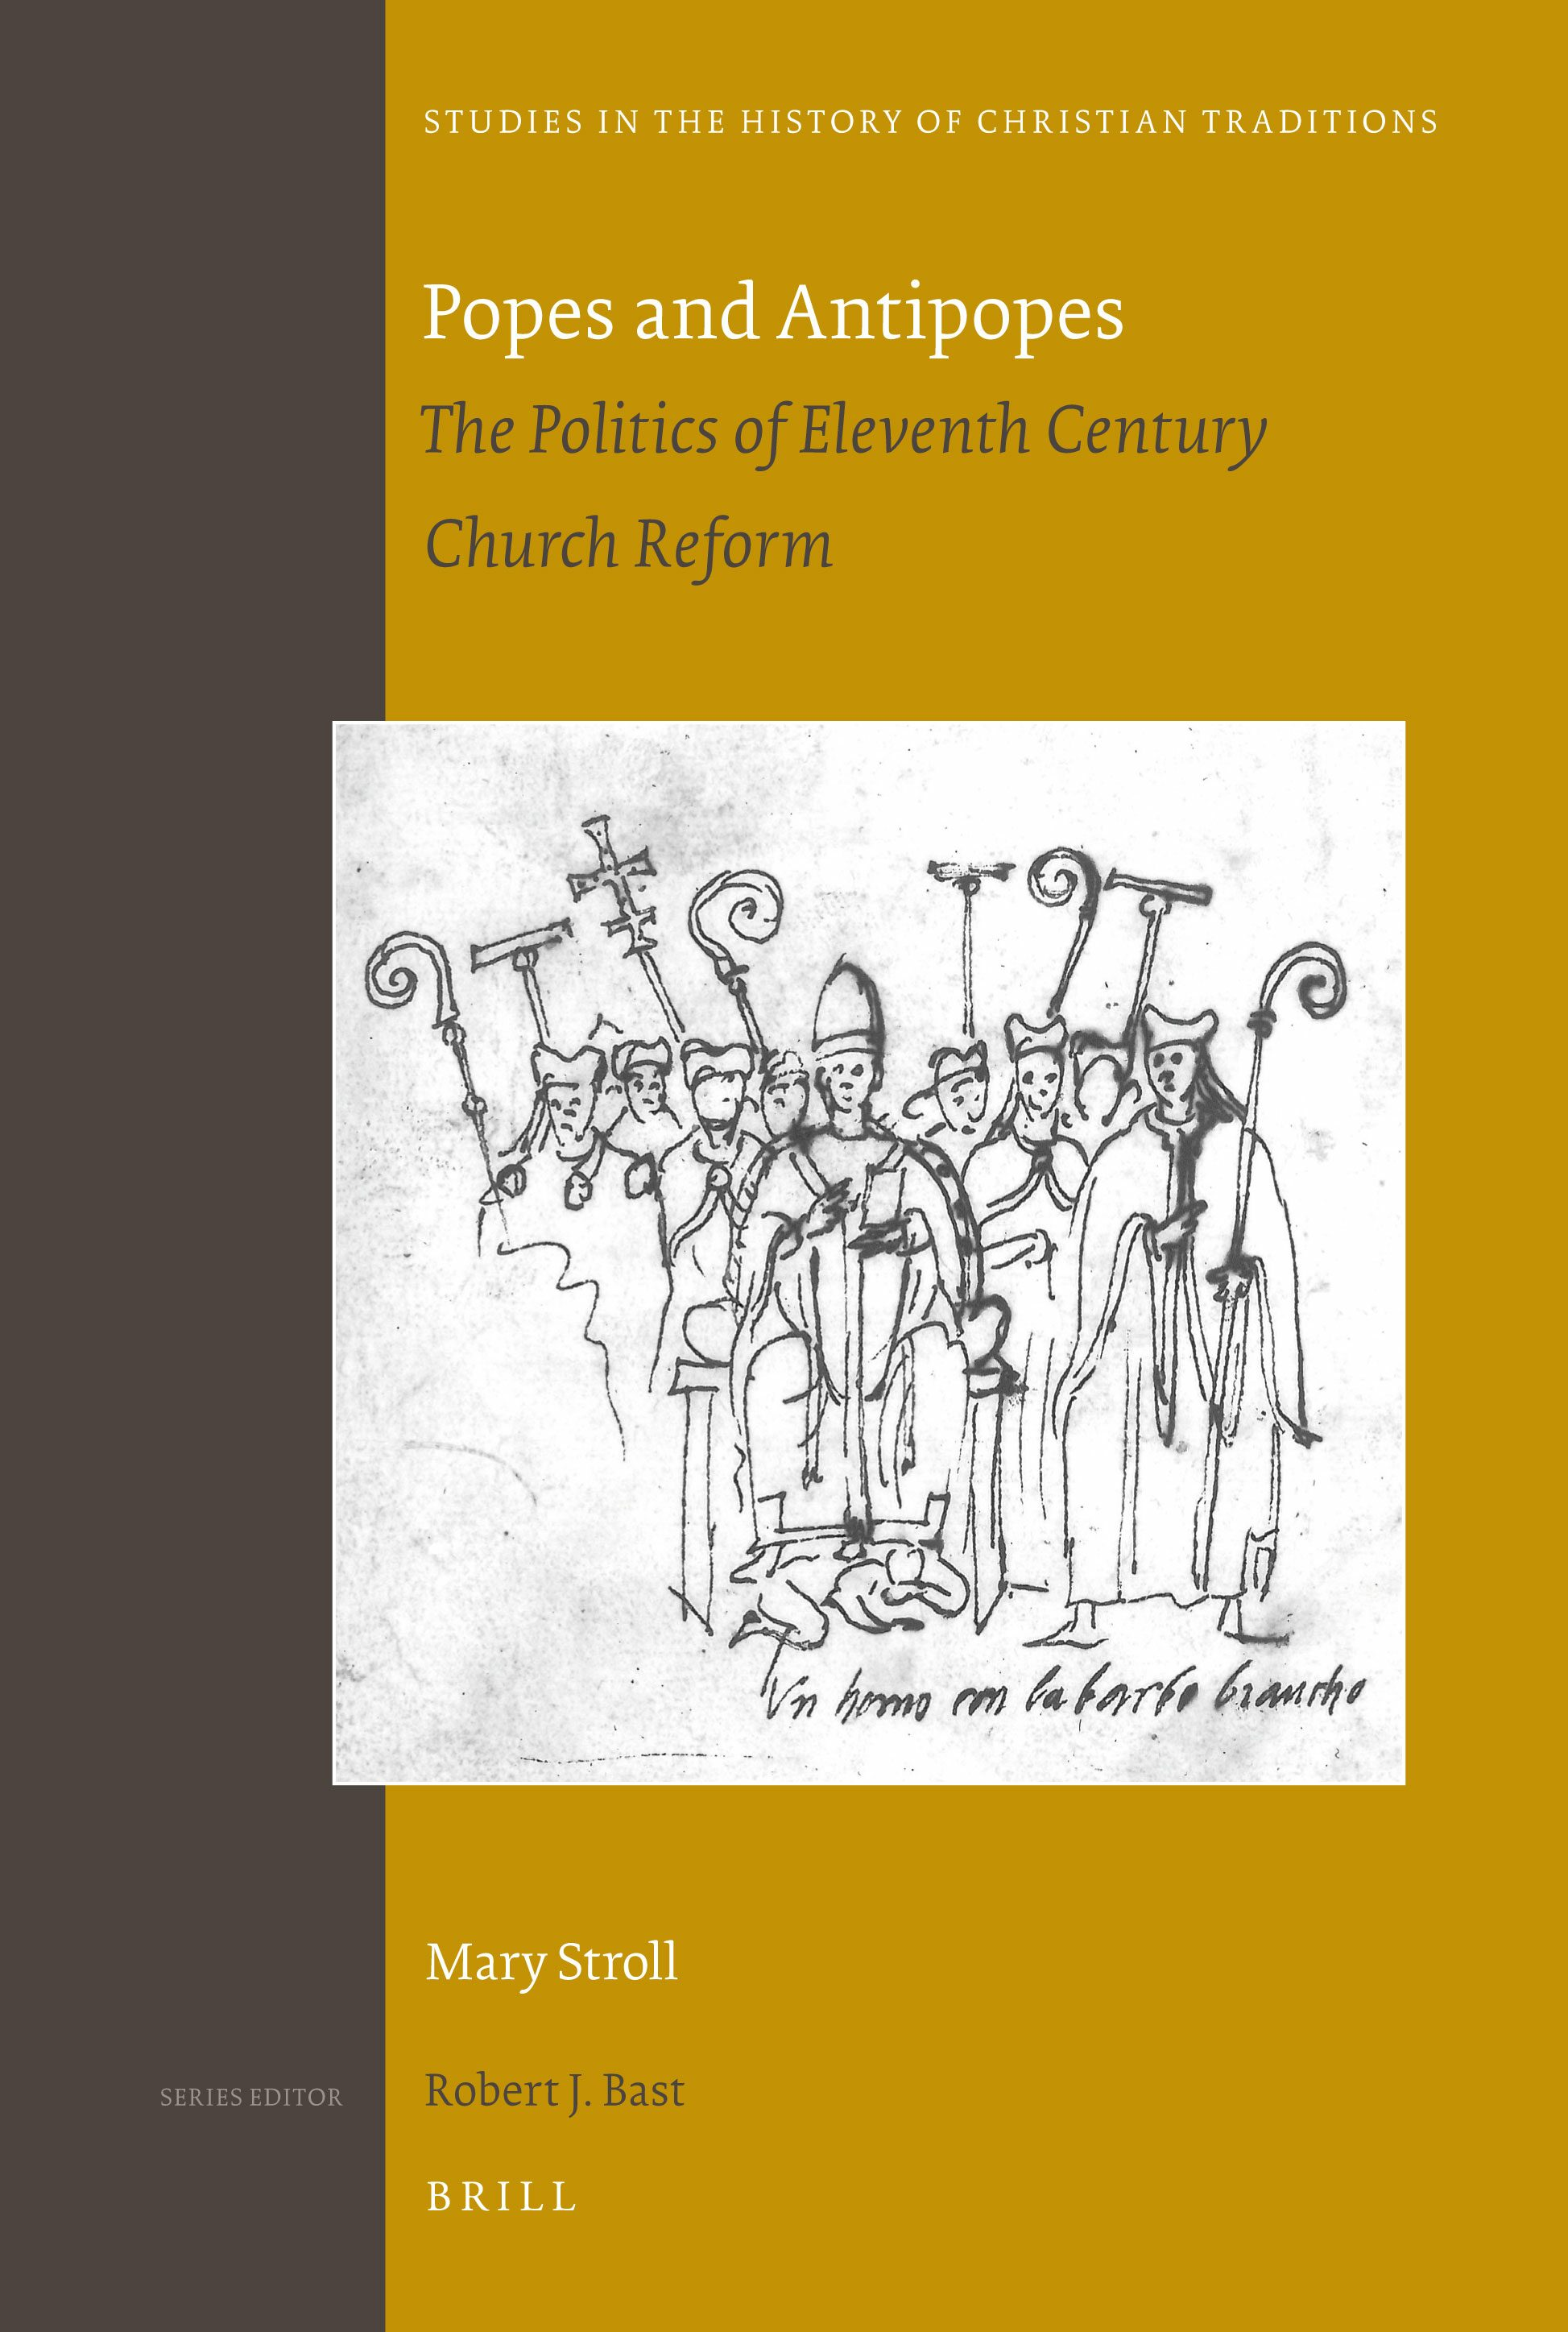 Popes and Antipopes: The Politics of Eleventh Century Church Reform | Brill